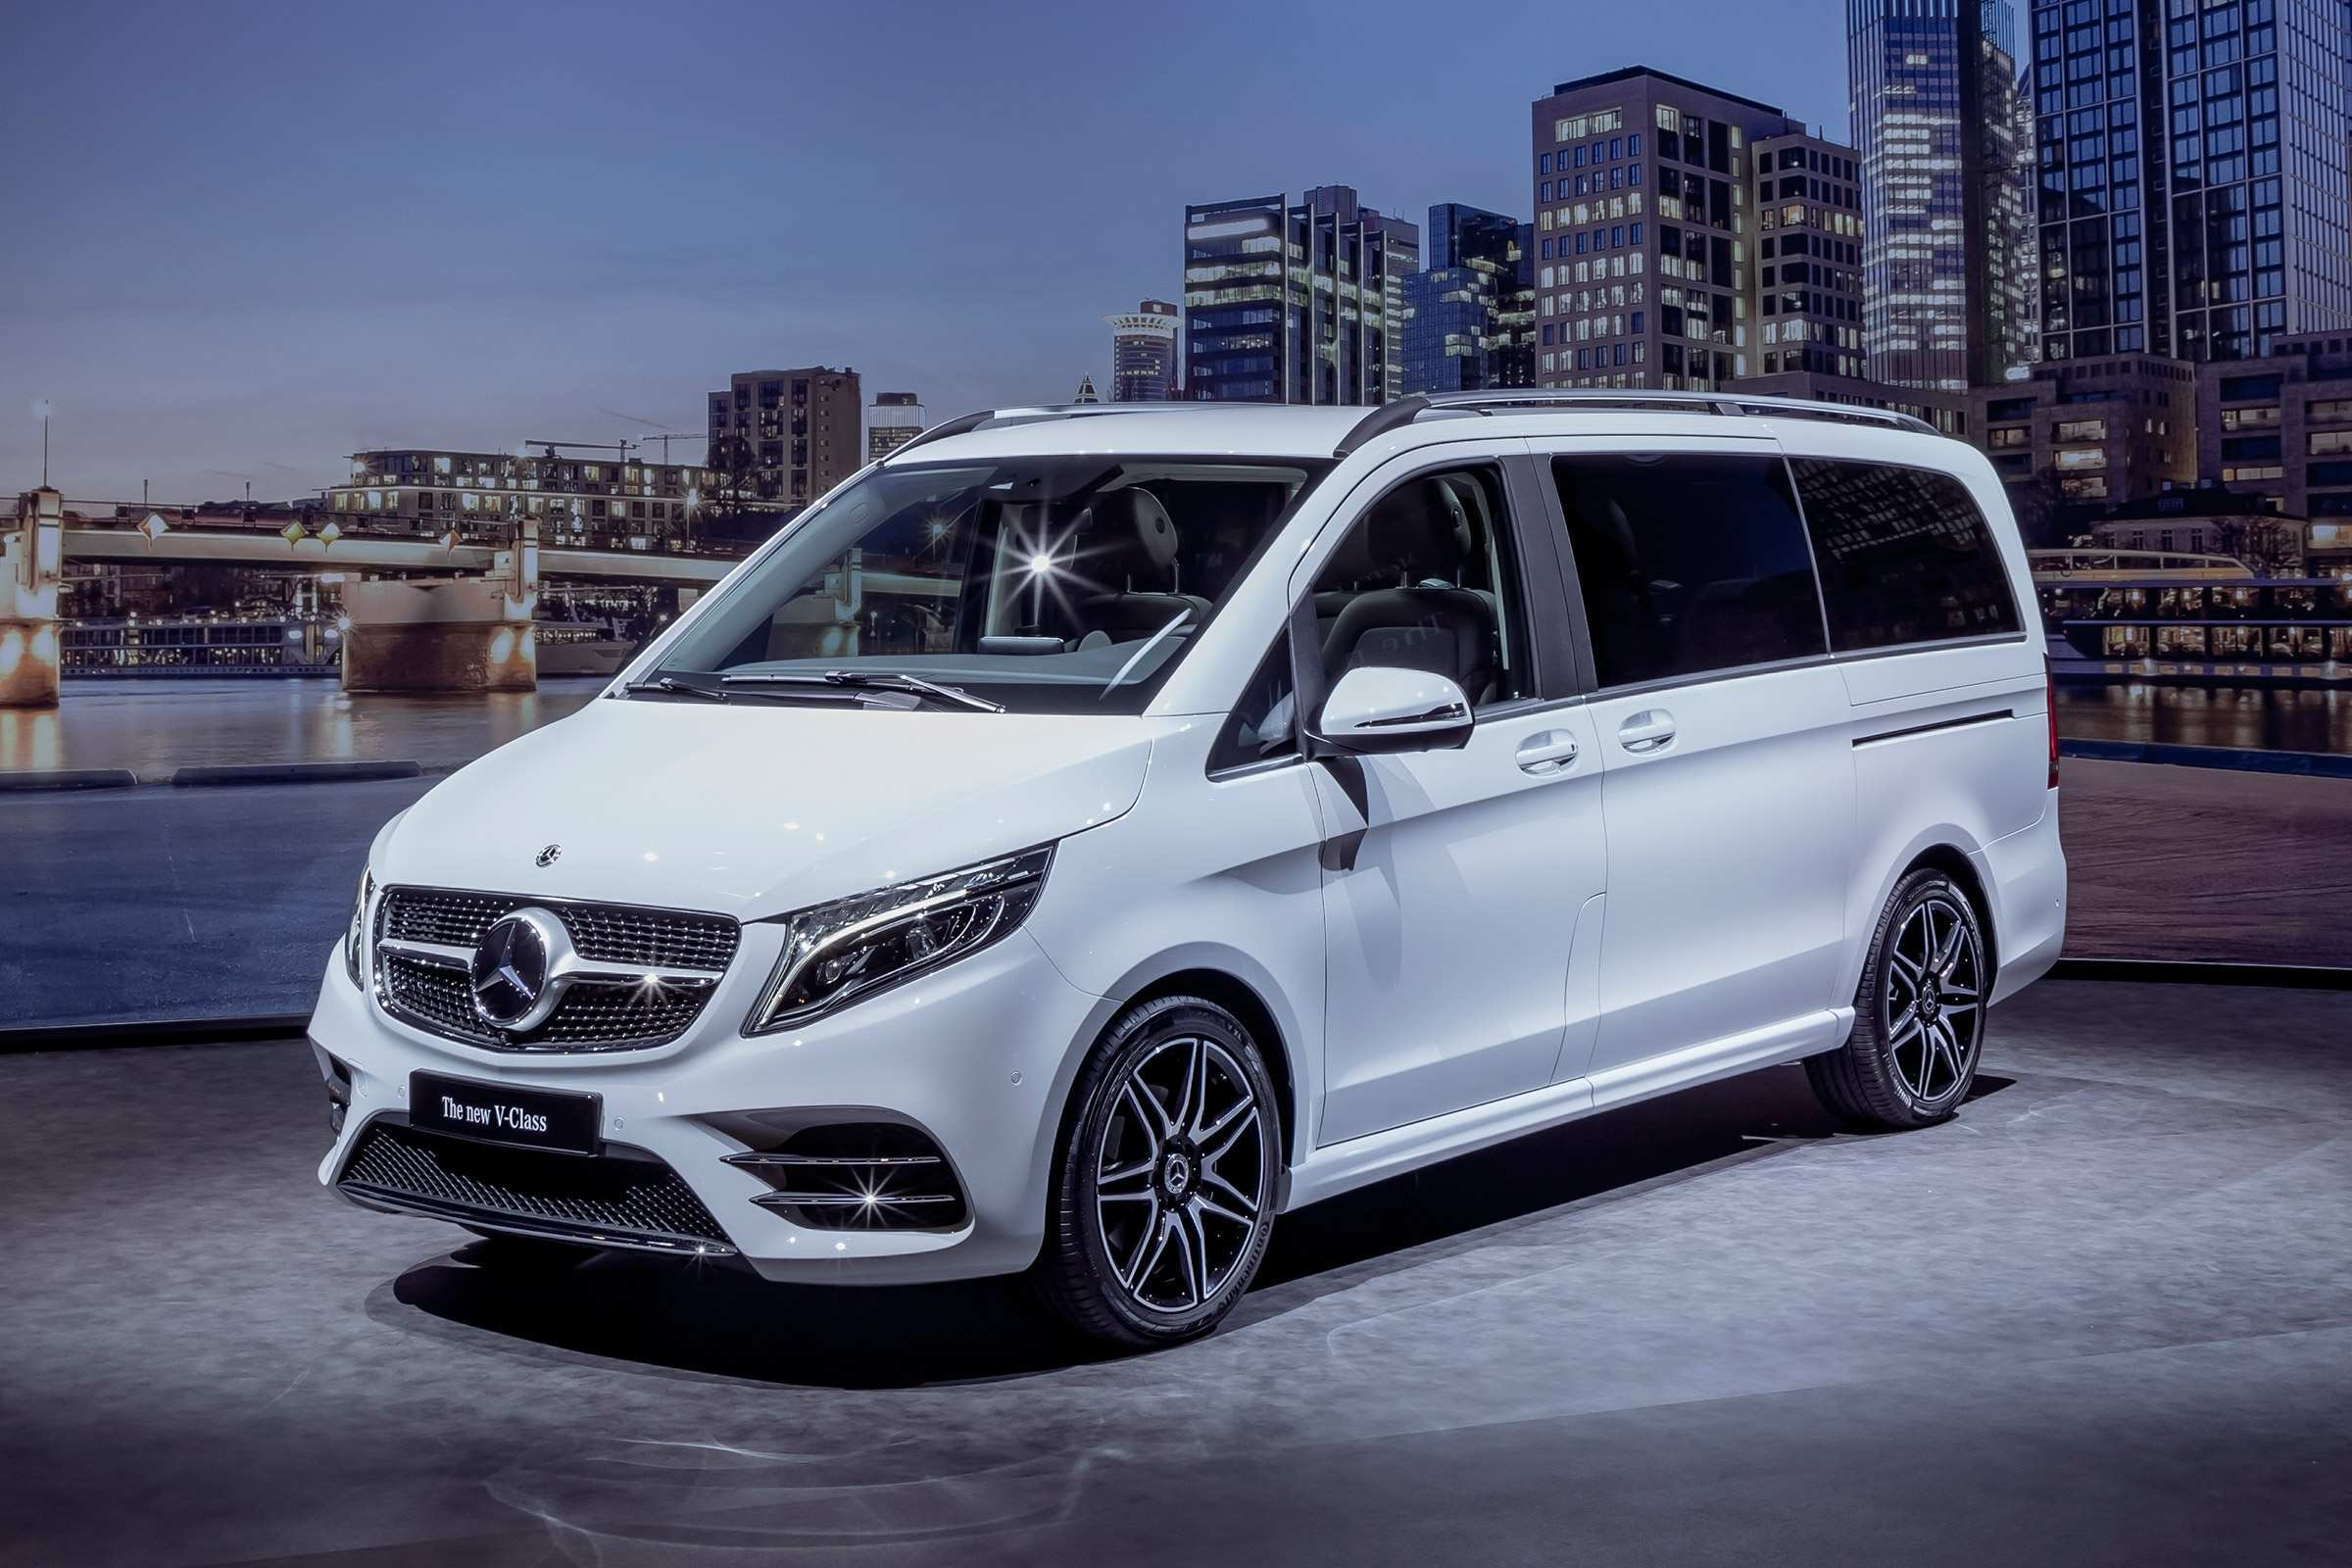 68 The Best Mercedes Vito 2019 Exterior